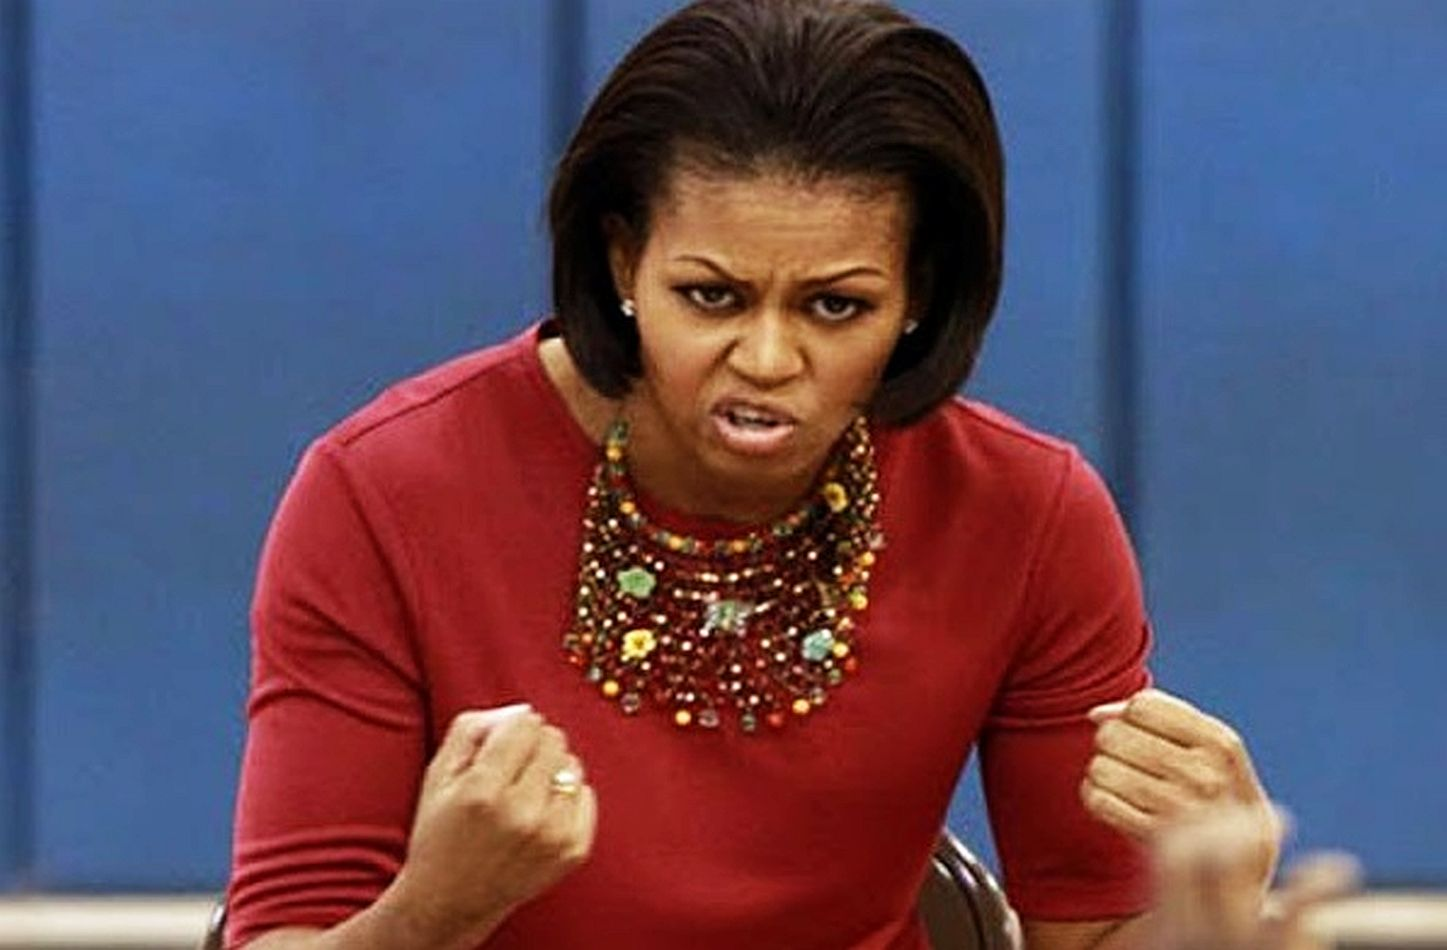 michelle-obama-boobs-gifs